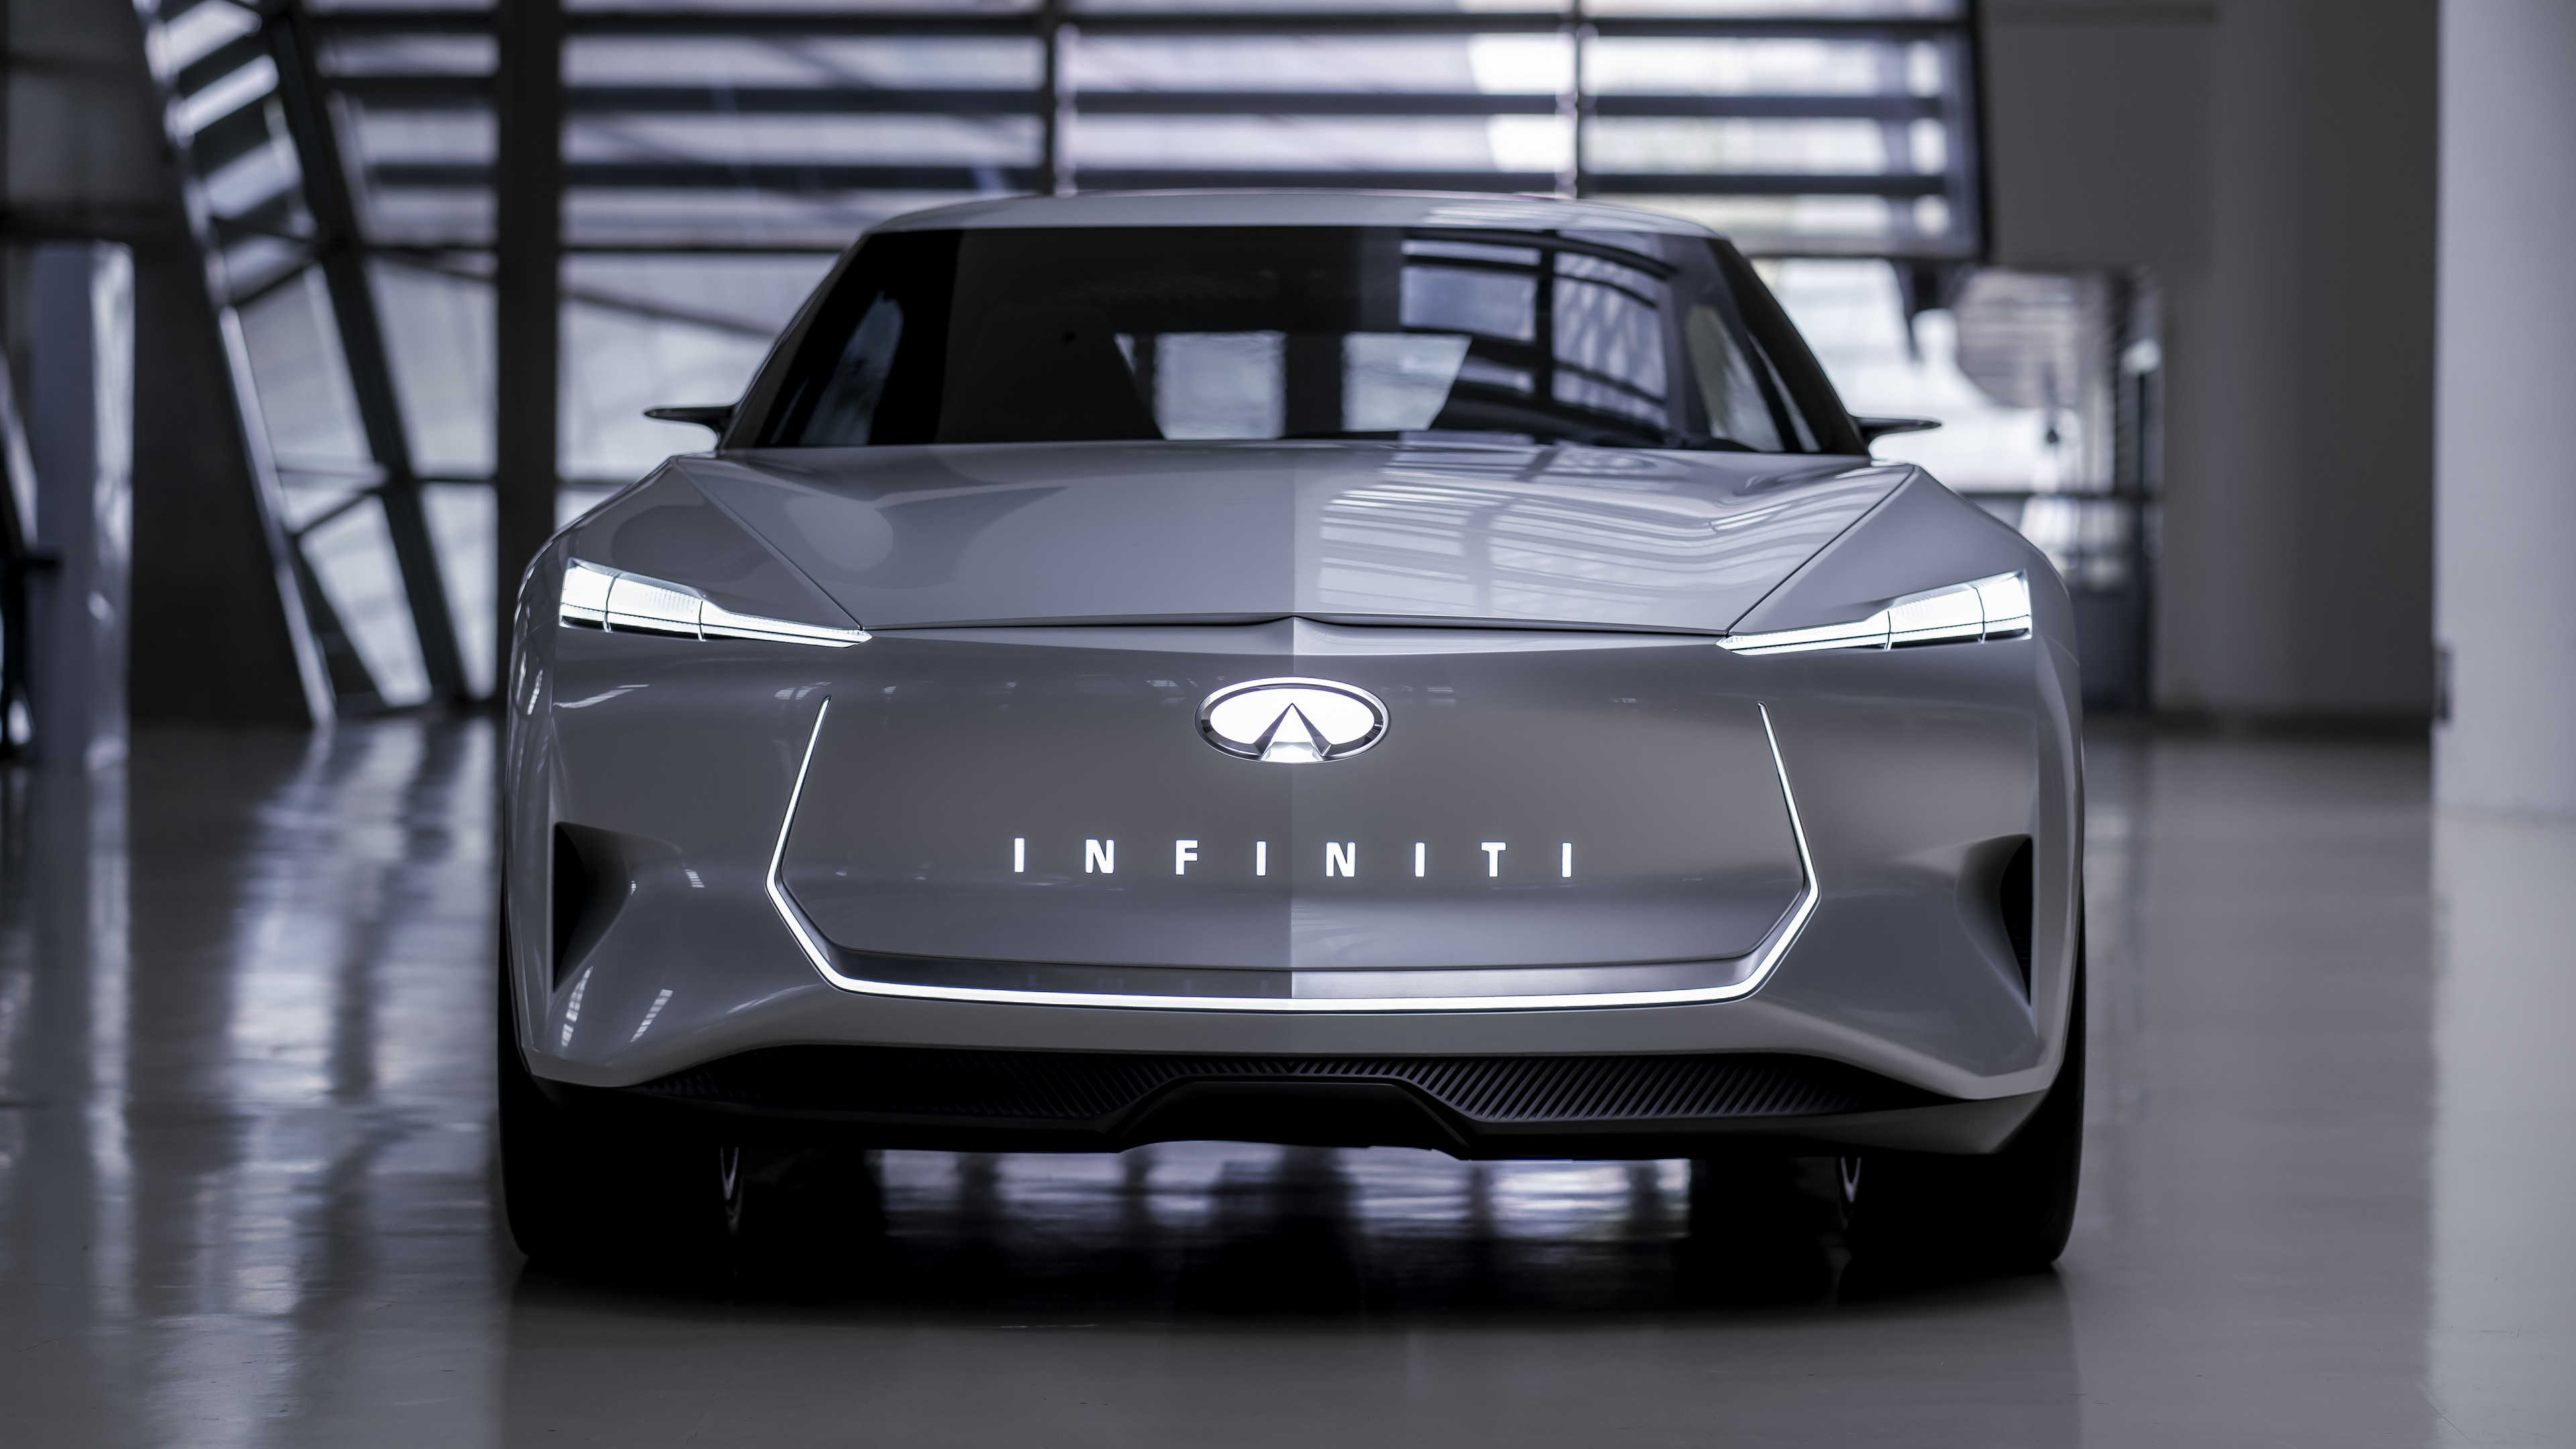 Infiniti Qs Inspiration 2019 5K 2 Wallpaper